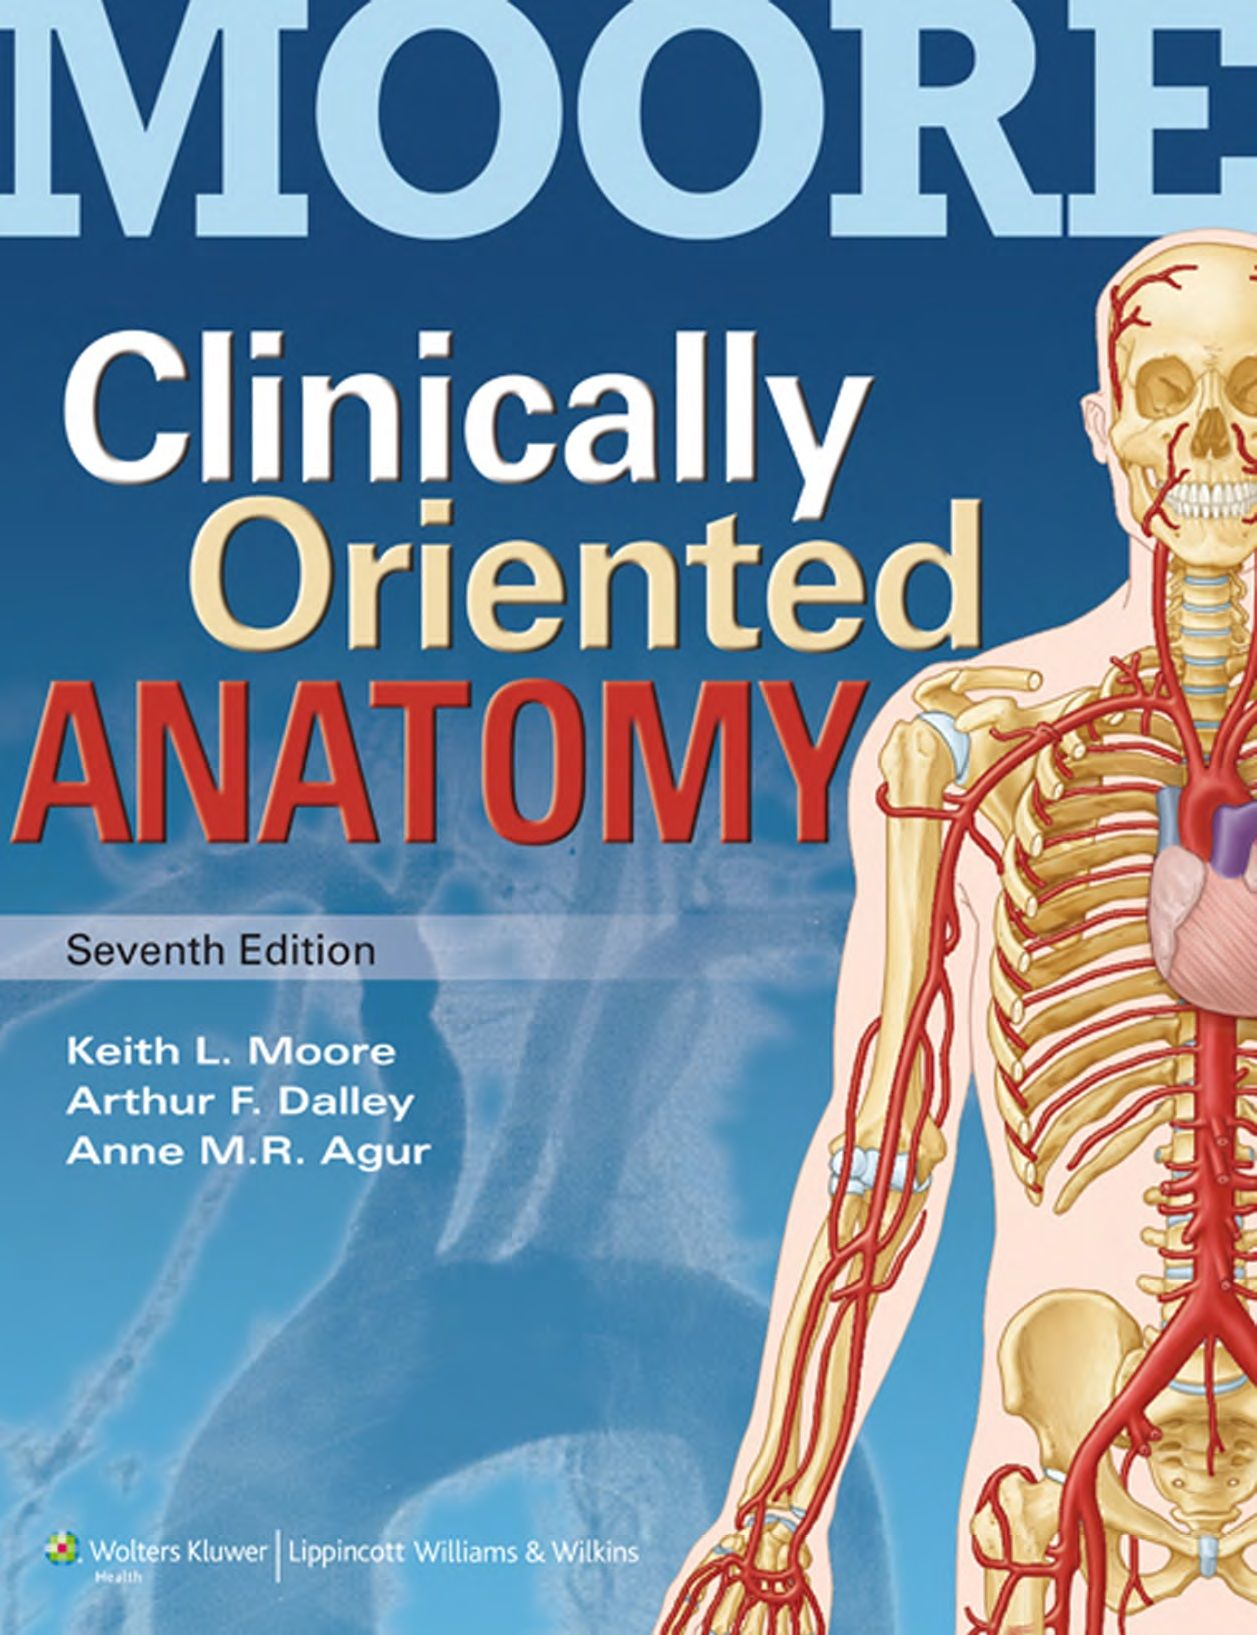 Clinically Oriented Anatomy 7th Edition PDF | q | Pinterest ...